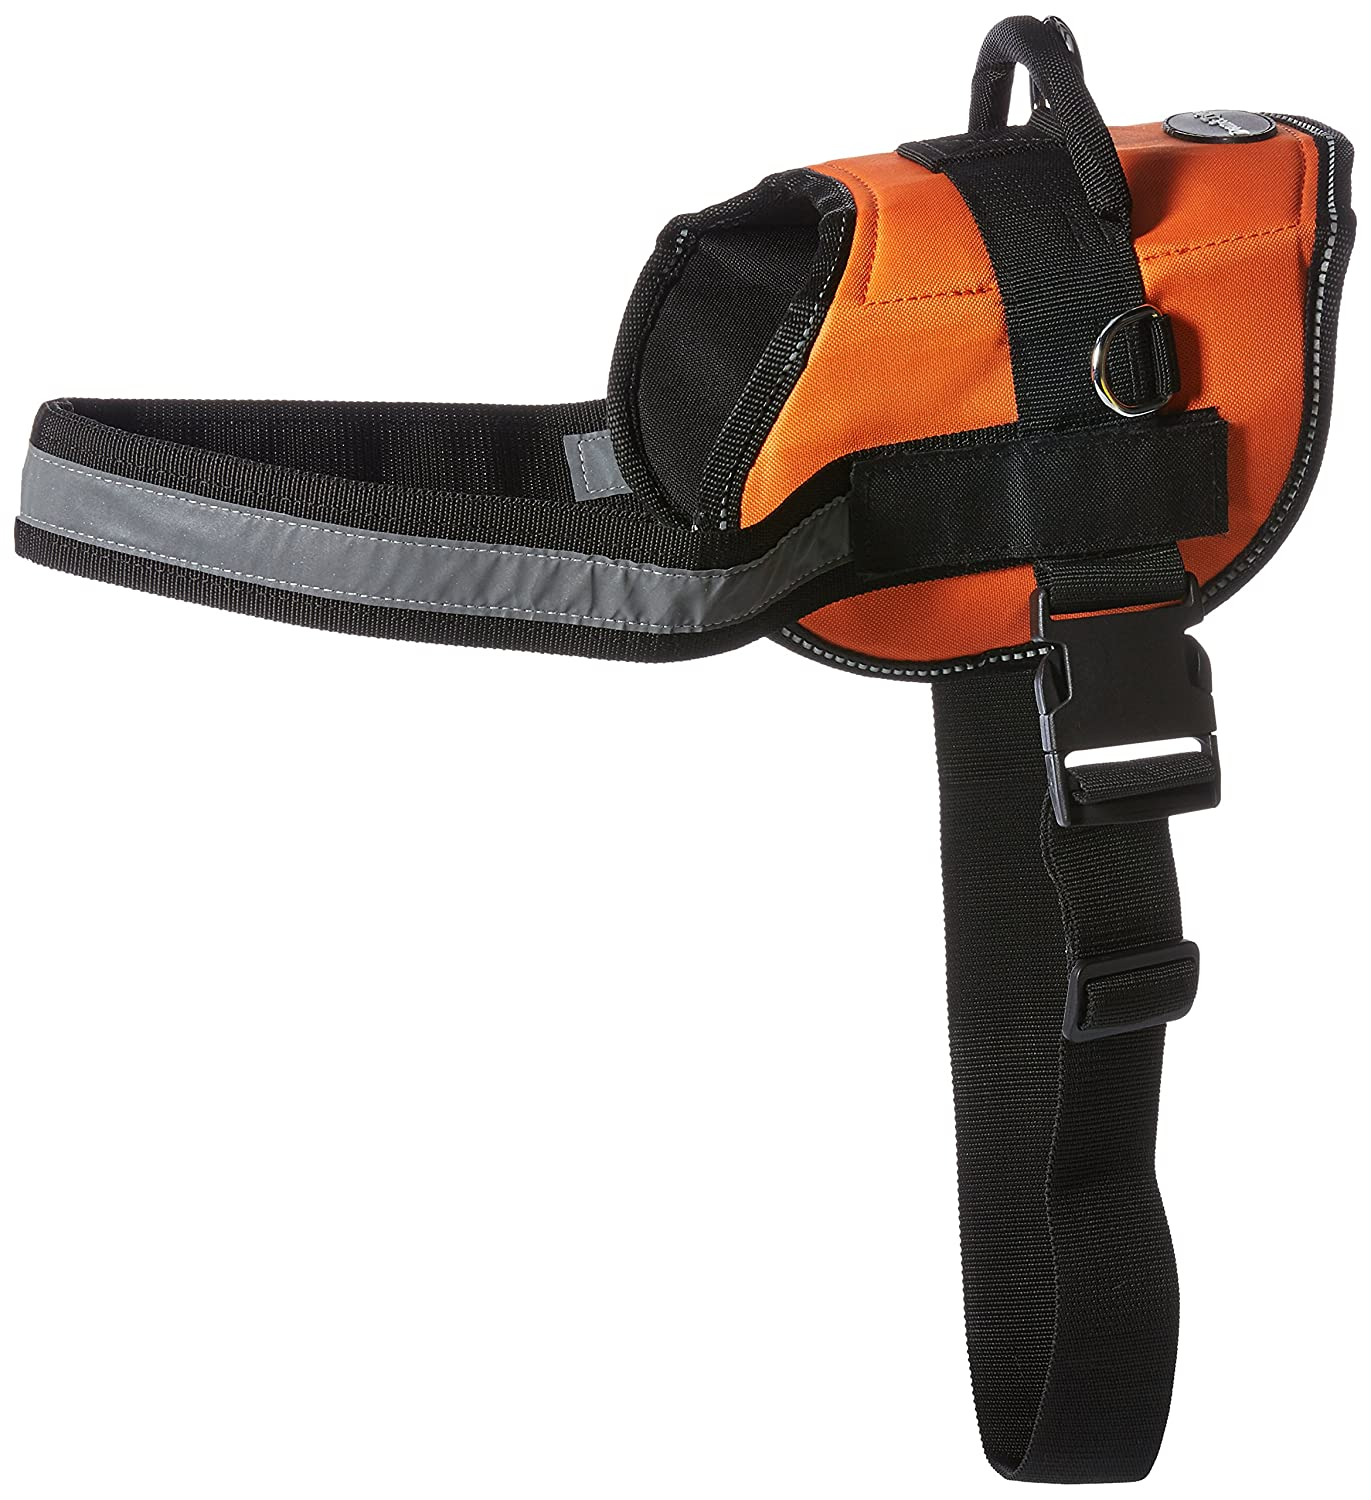 Dean & Tyler DT Works Certified Service Dog Dog Harness, Fits Girth Size 34-Inch to 47-Inch, Large, orange Black